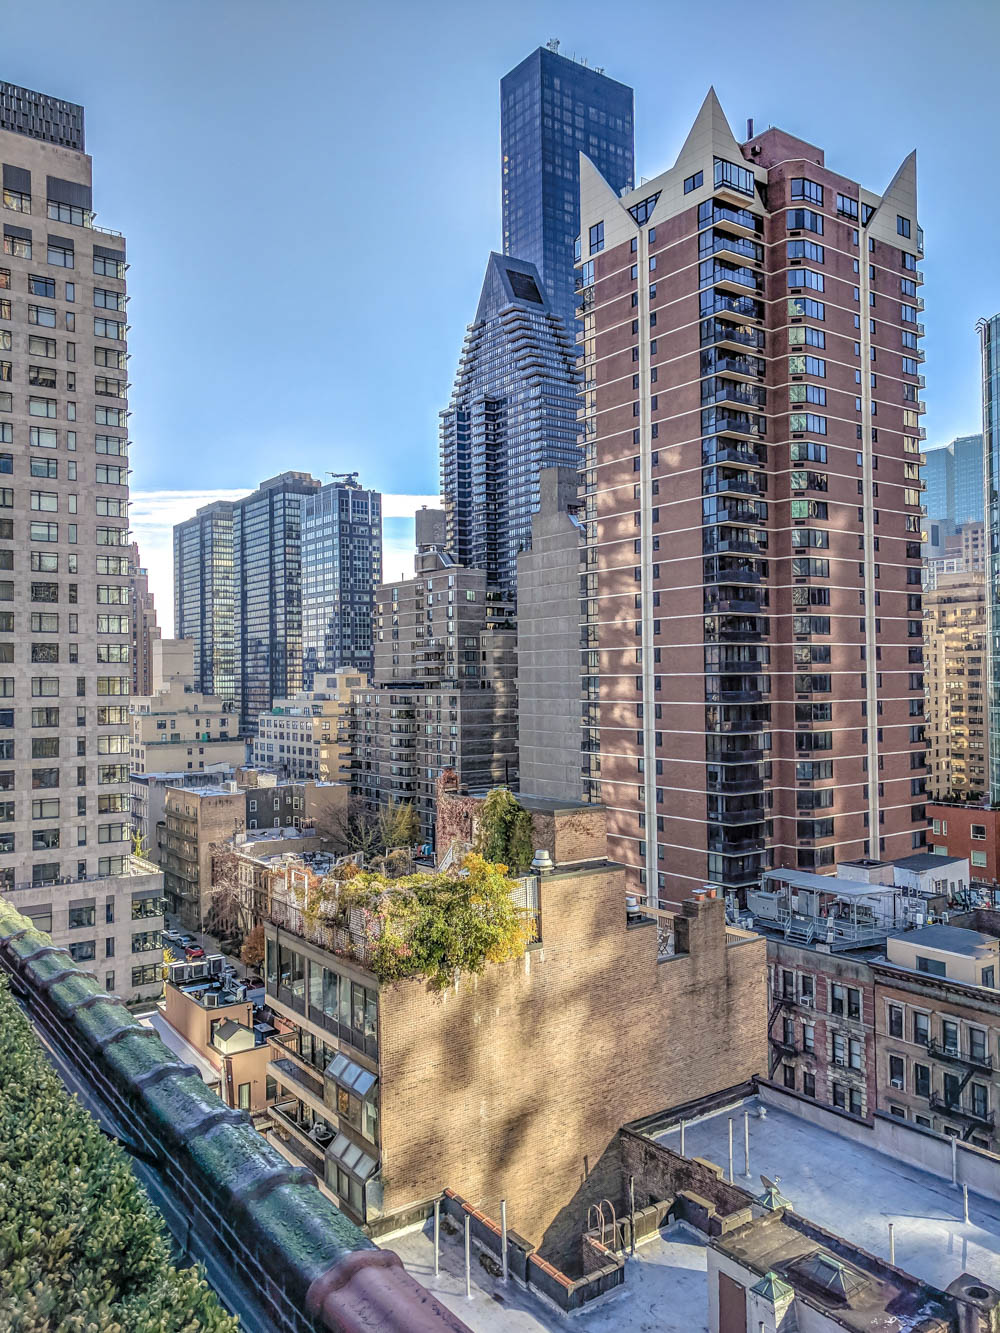 views of manhattan buildings from Pod 51 rooftop